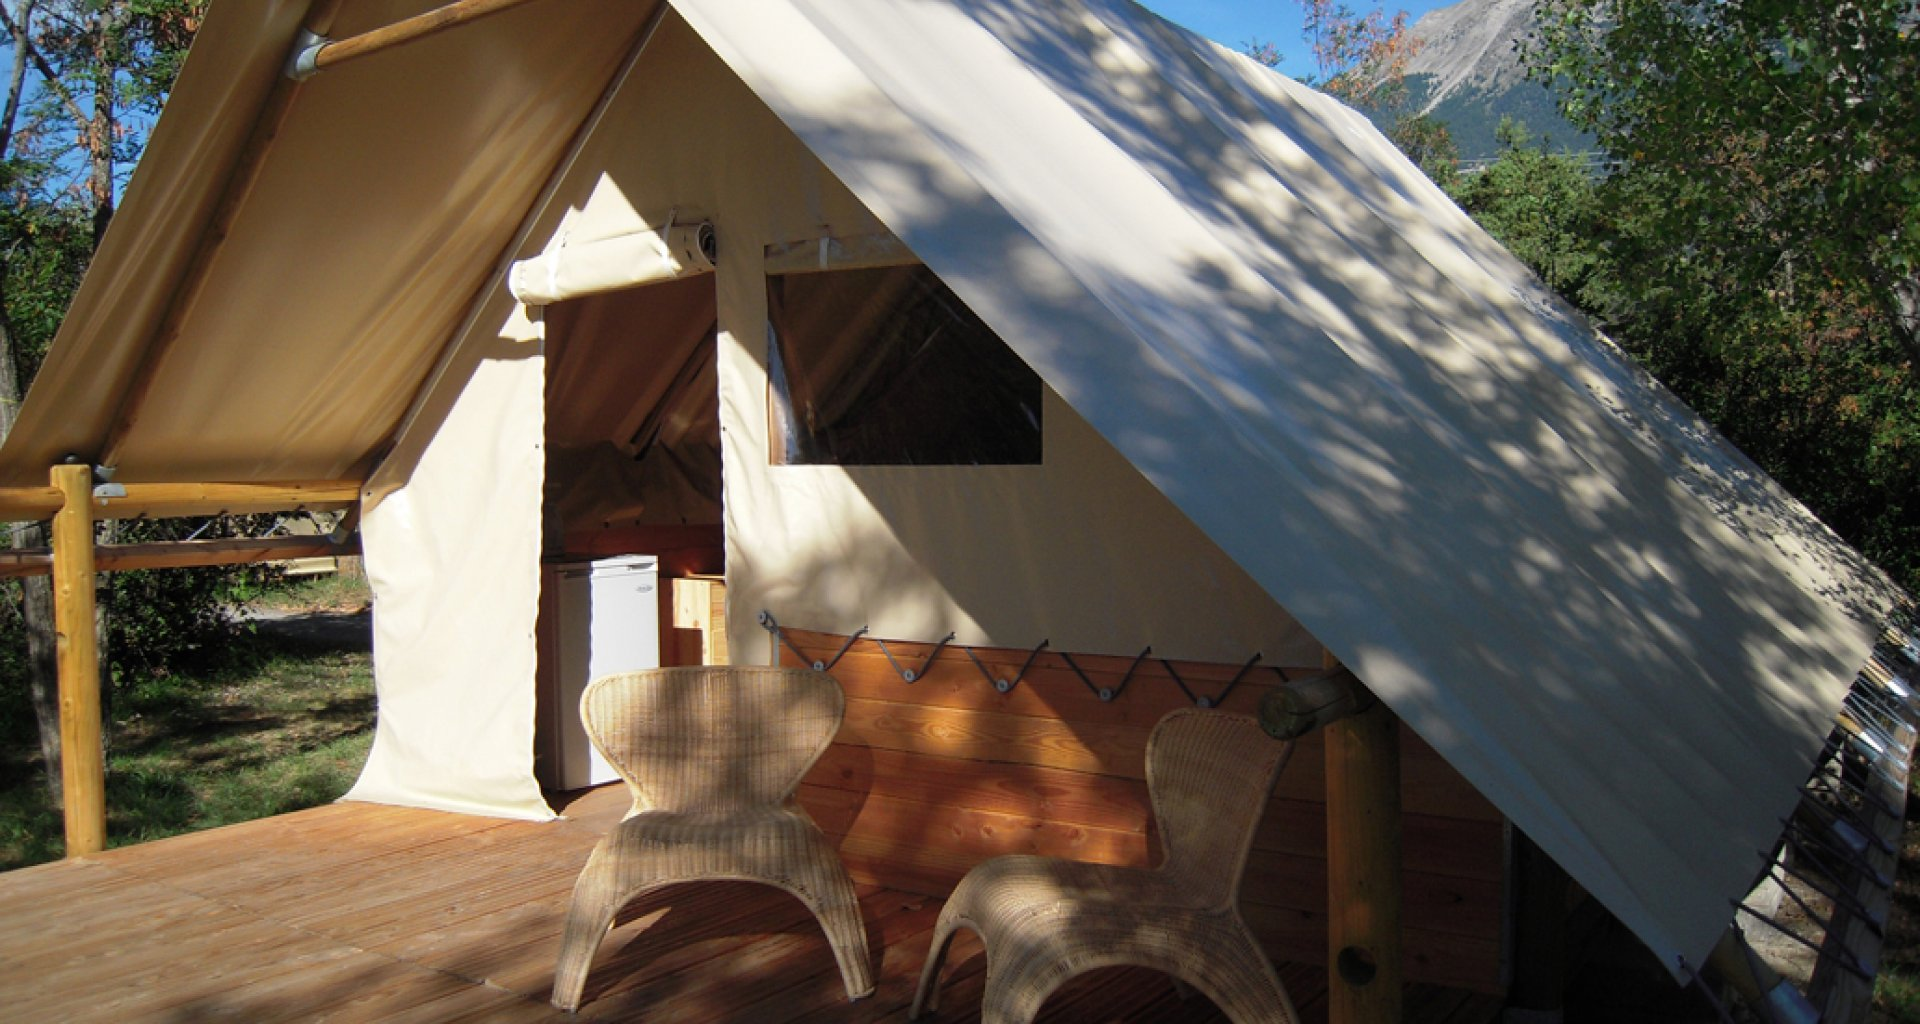 Bamboe lodge tent